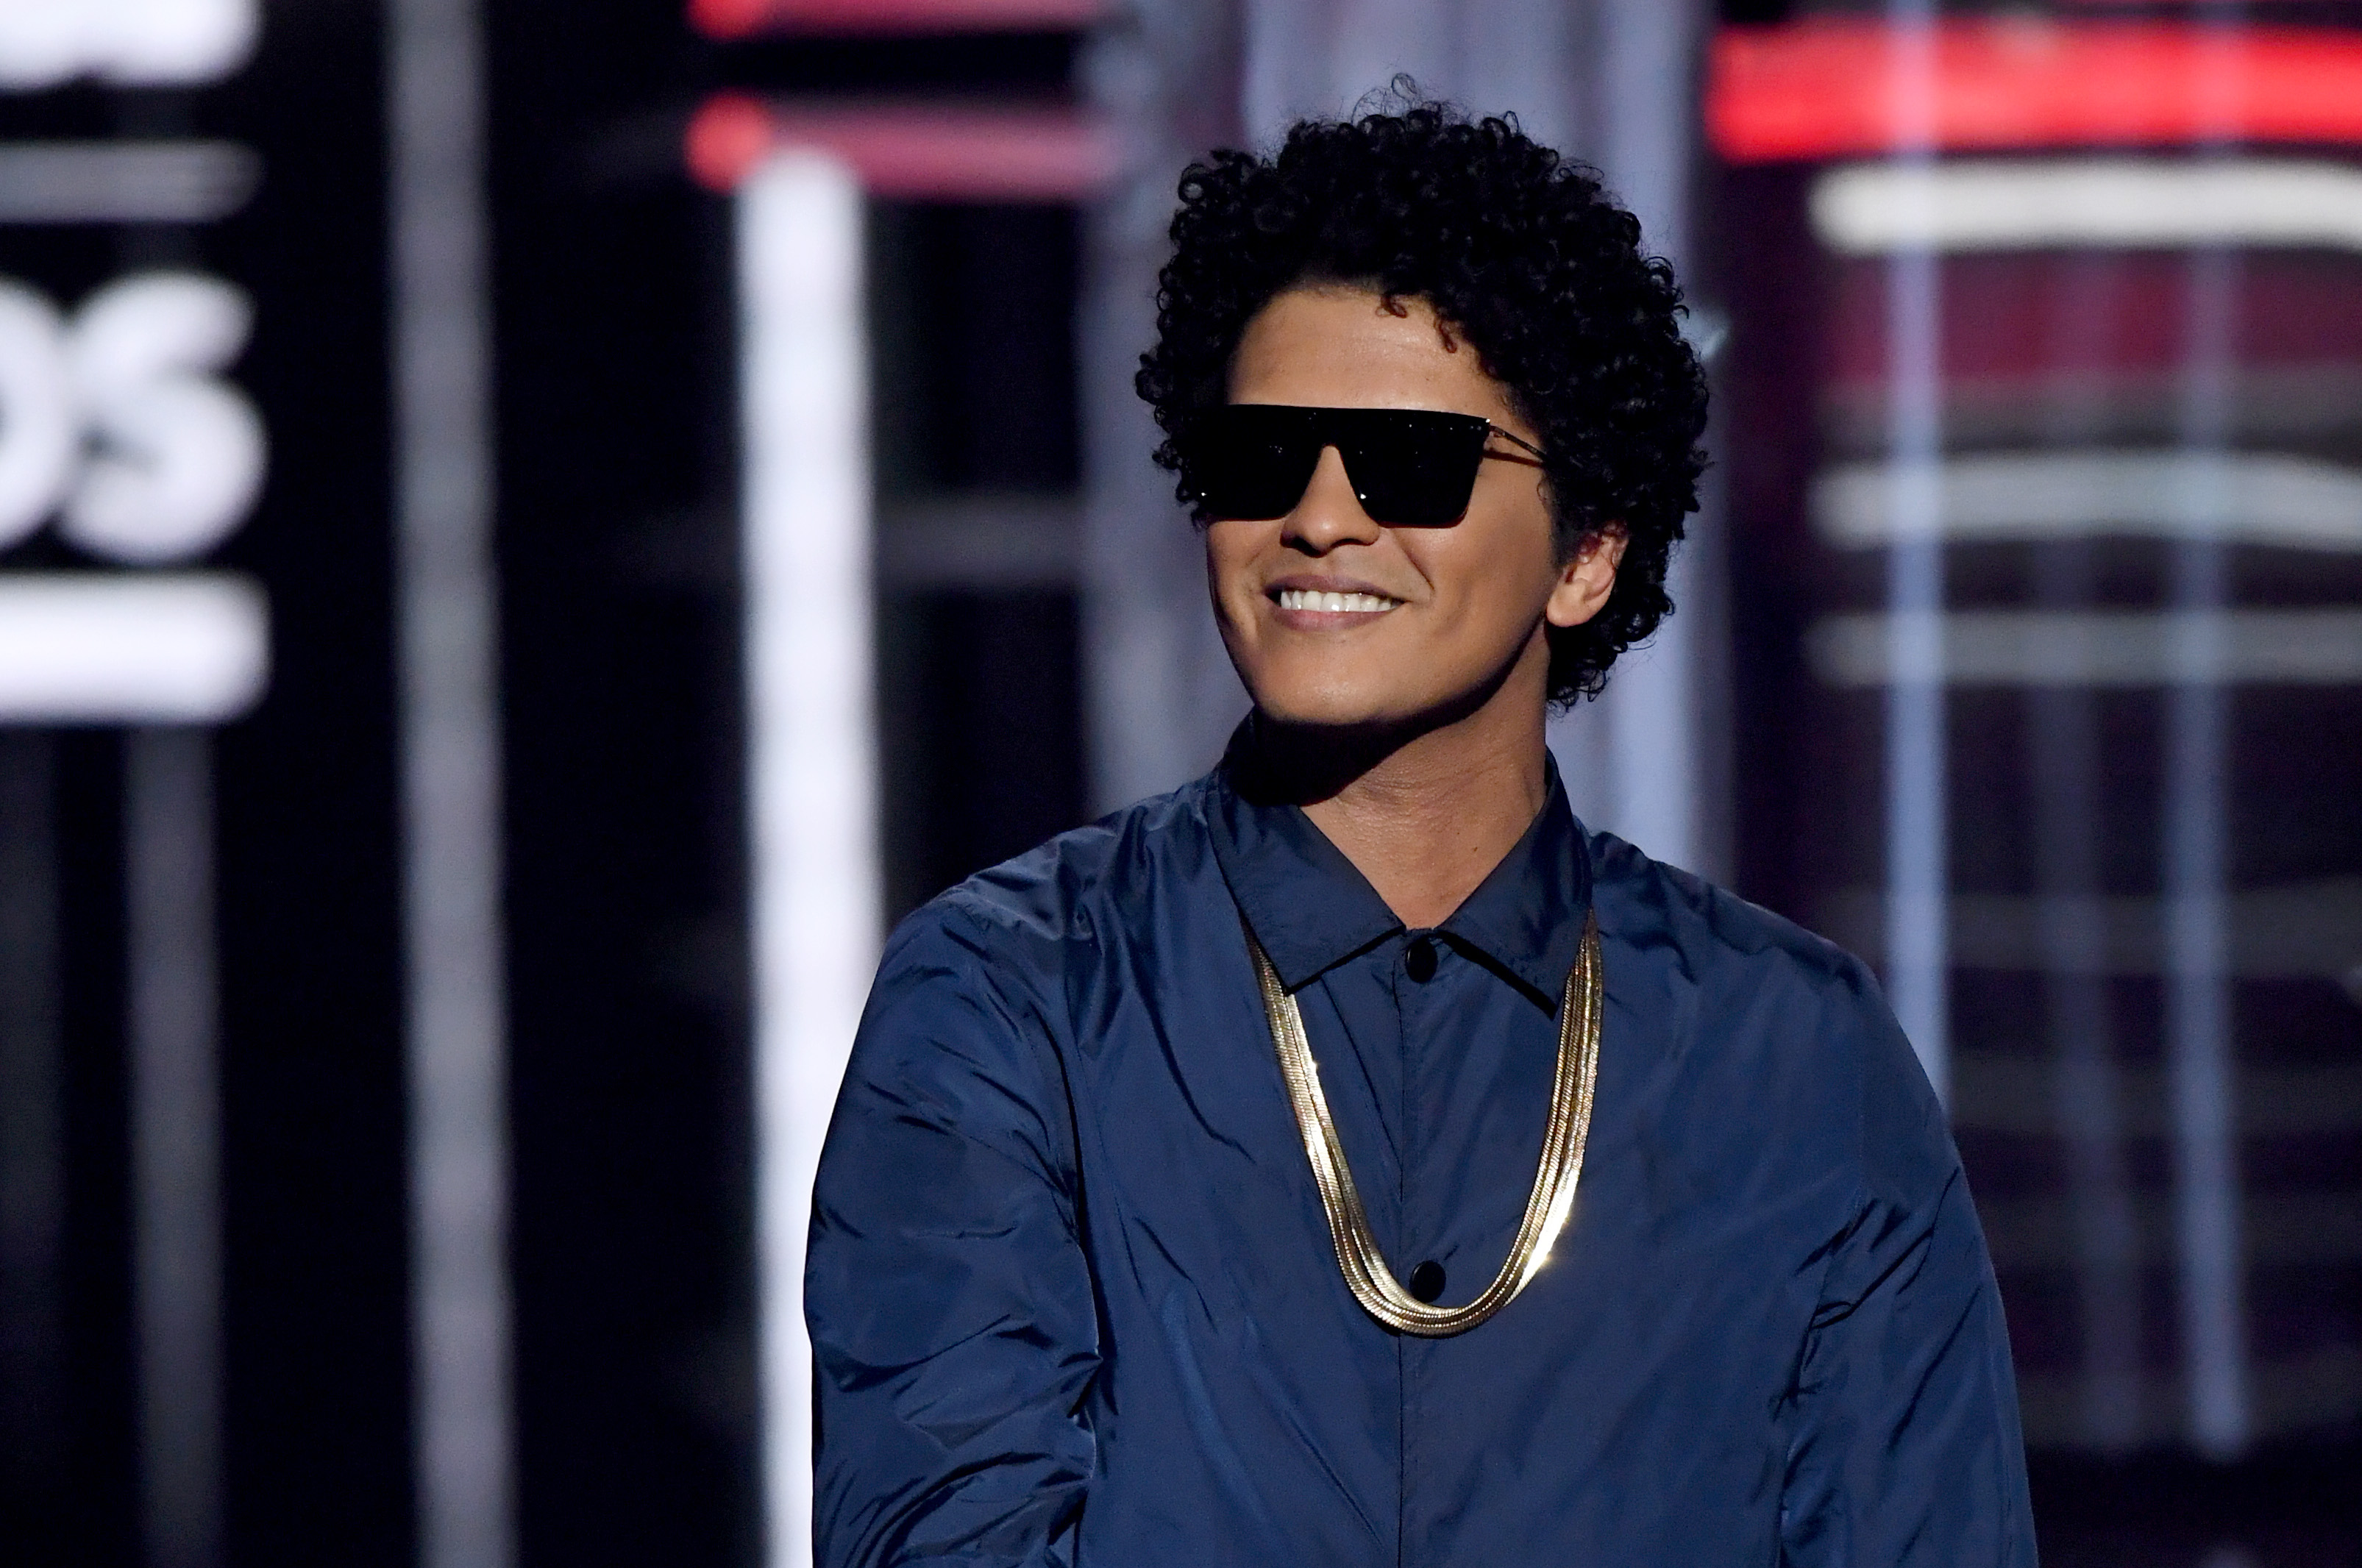 Bruno Mars Responds To Accusations Of Being 'A Cultural Thief'